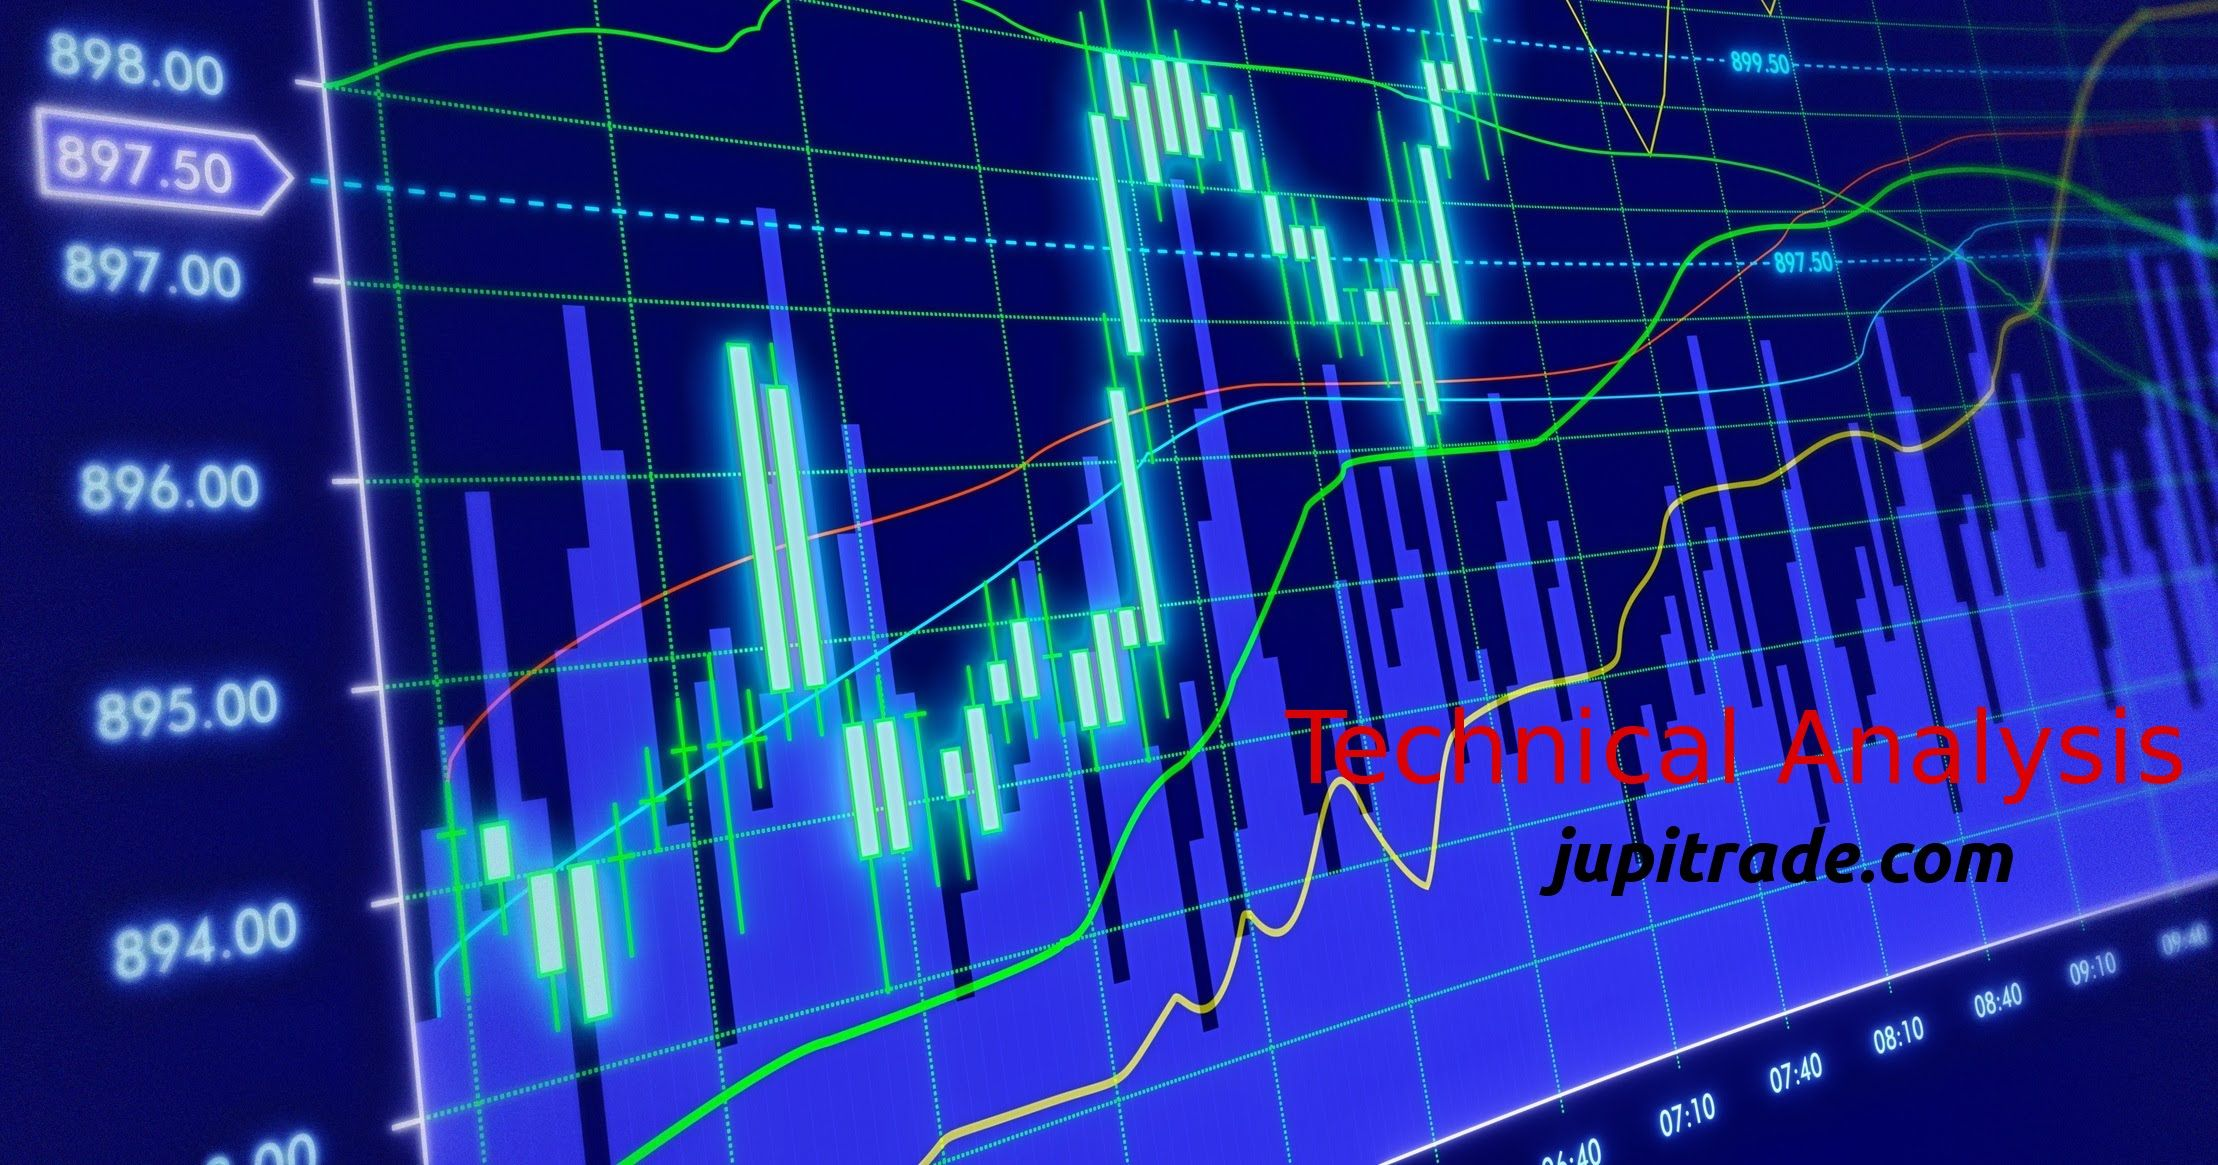 Get The Latest Stock Share Market Technical Ysis At Jupitrade Bse Nse Live Indices Equity News Trading Ideas Key Trends